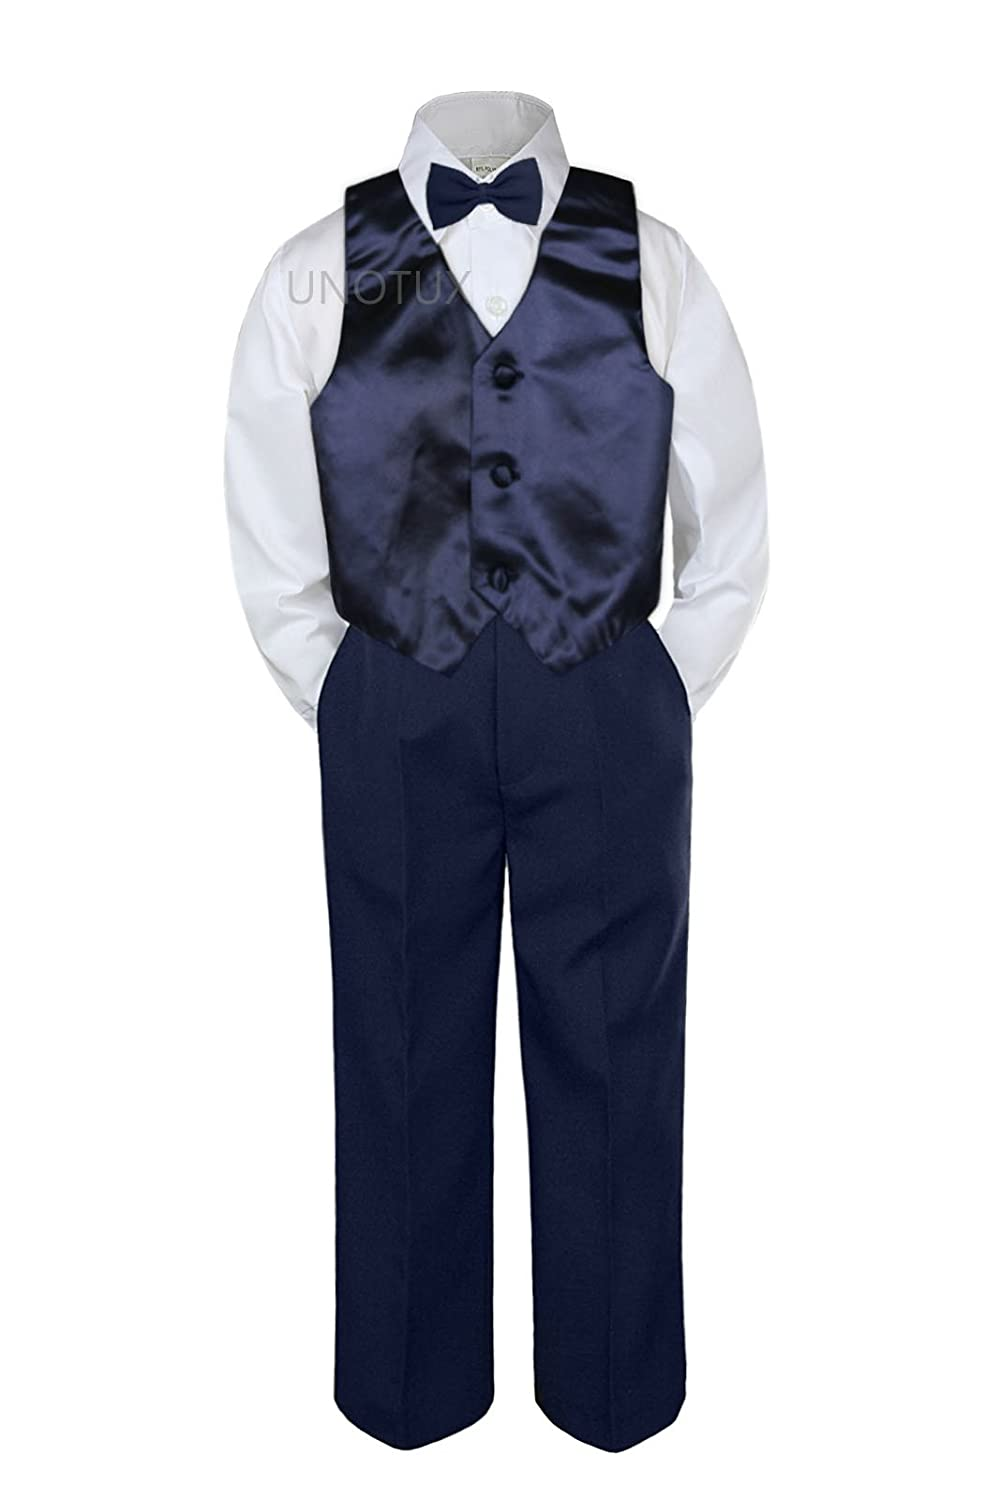 Infant Boys Starting Out 4pc Navy /& Green Vest Suit Size 24 Months